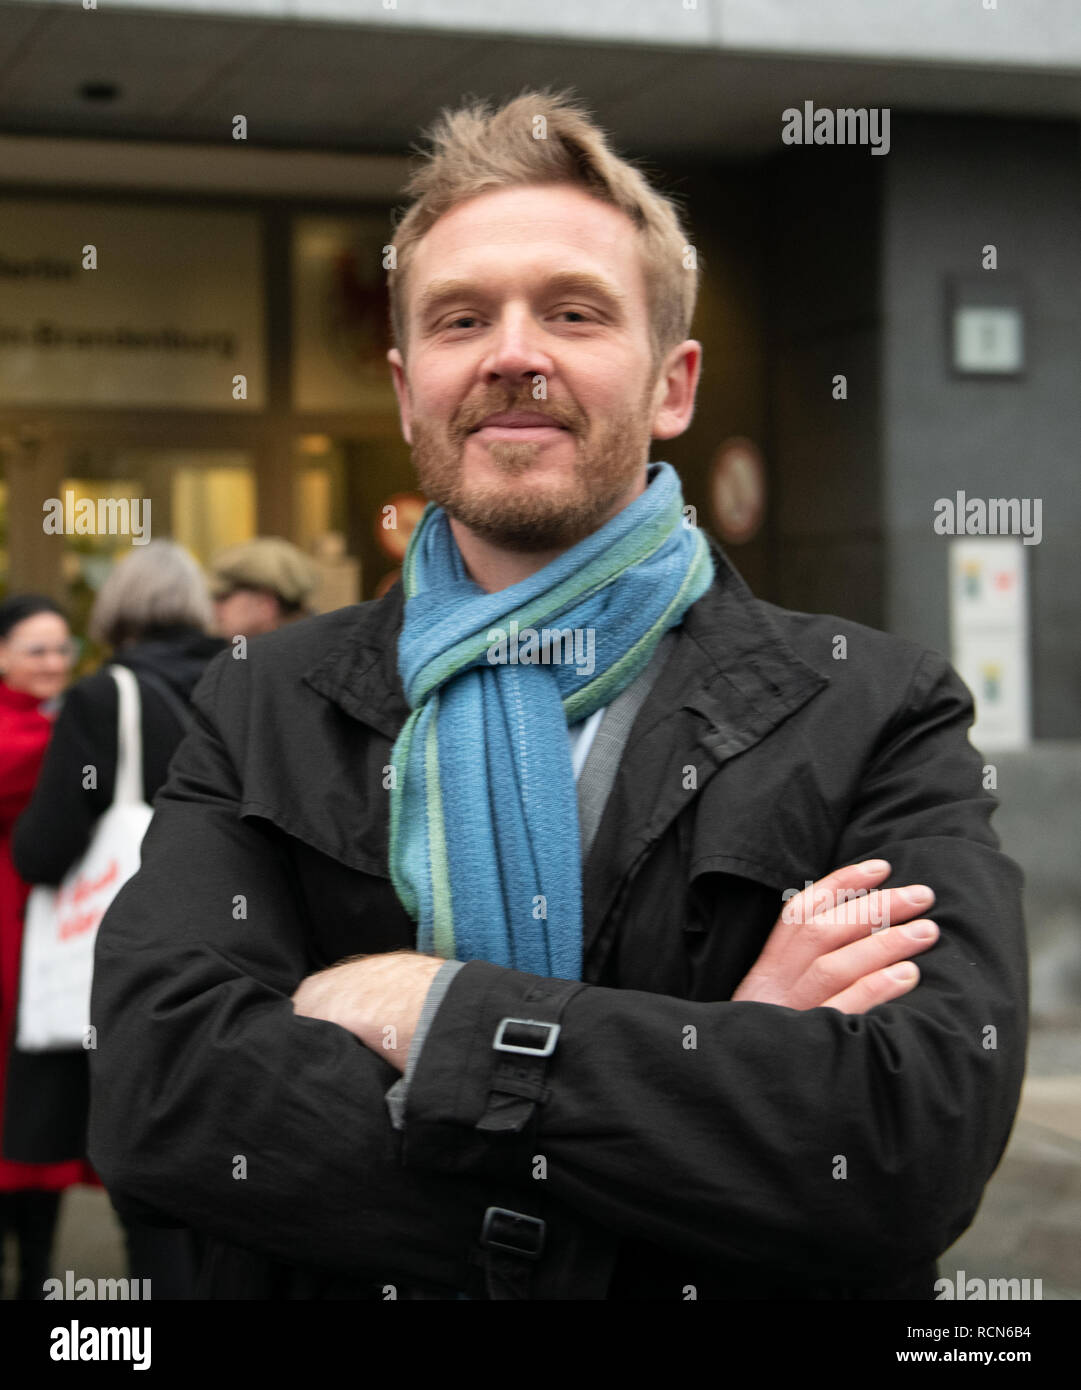 Berlin, Germany  16th Jan, 2019  Primary school teacher Nikolai N